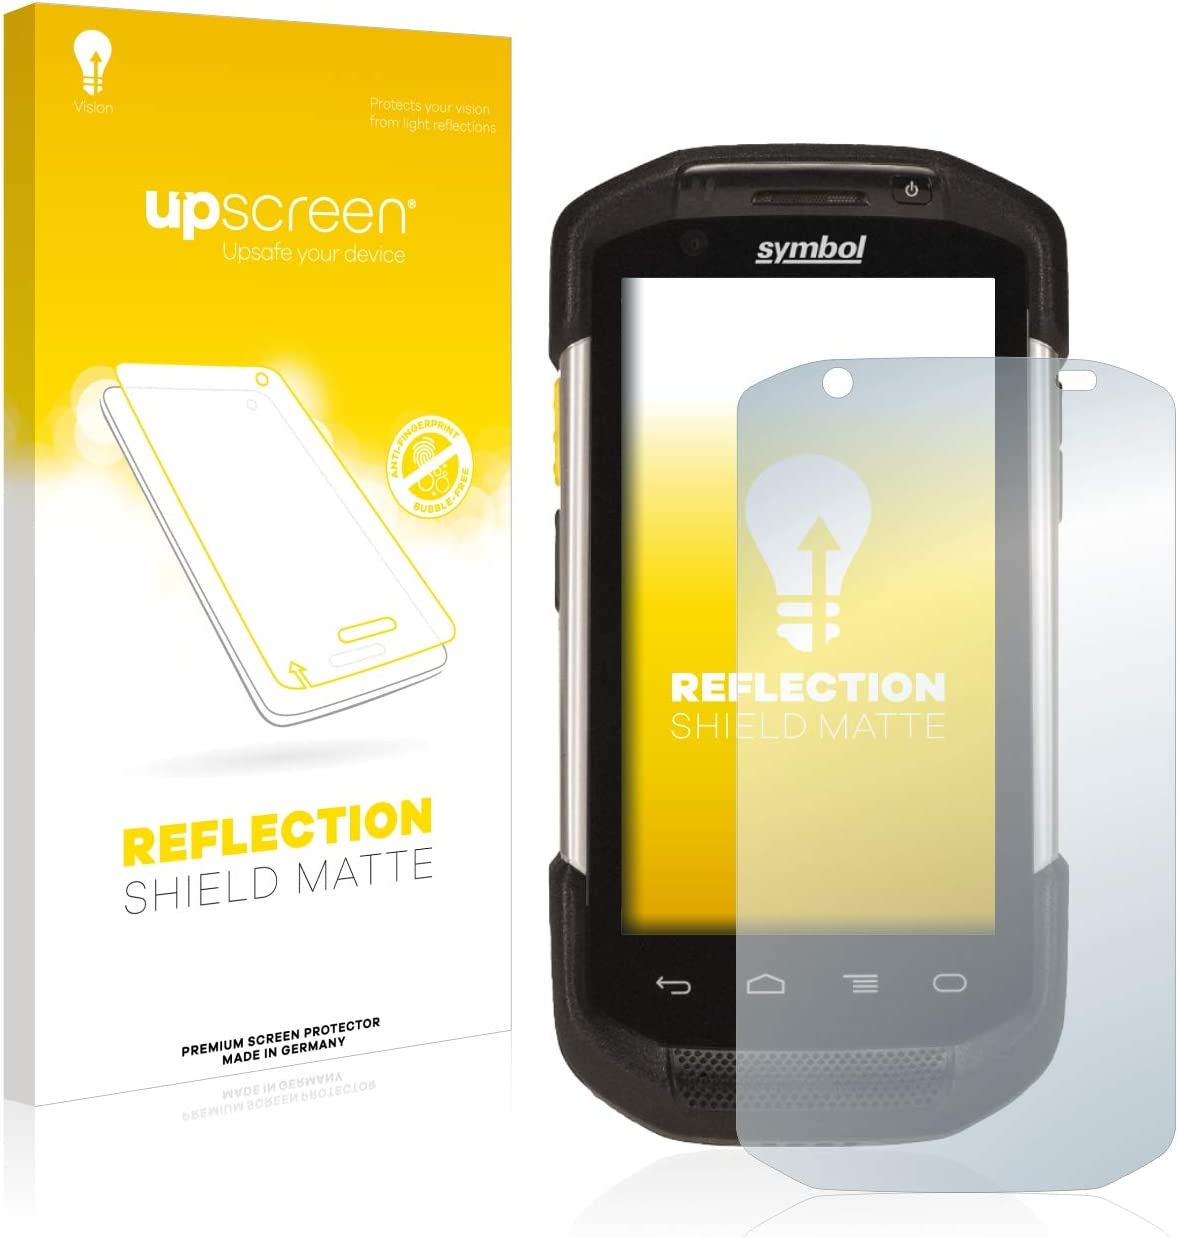 upscreen Matte and Anti-Glare Reflection Shield Matte Screen Protector for Zebra TC77 Strong Scratch Protection Multitouch Optimized